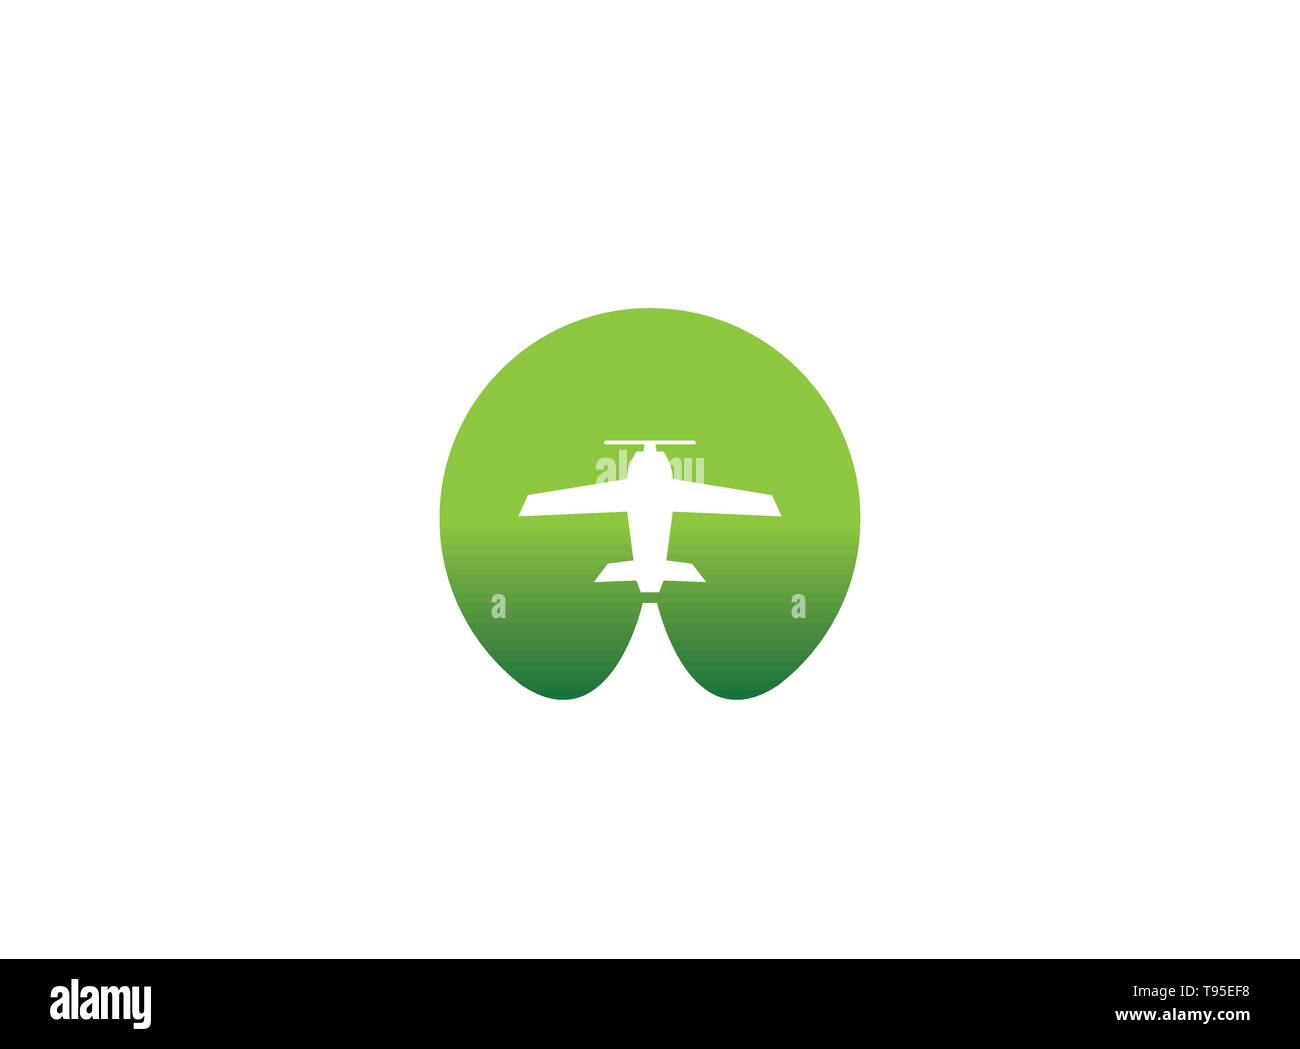 Small plane travel agency logo design idea with an airplane across the green circle negative space. Amazing destinations creative symbol trip icon - Stock Image